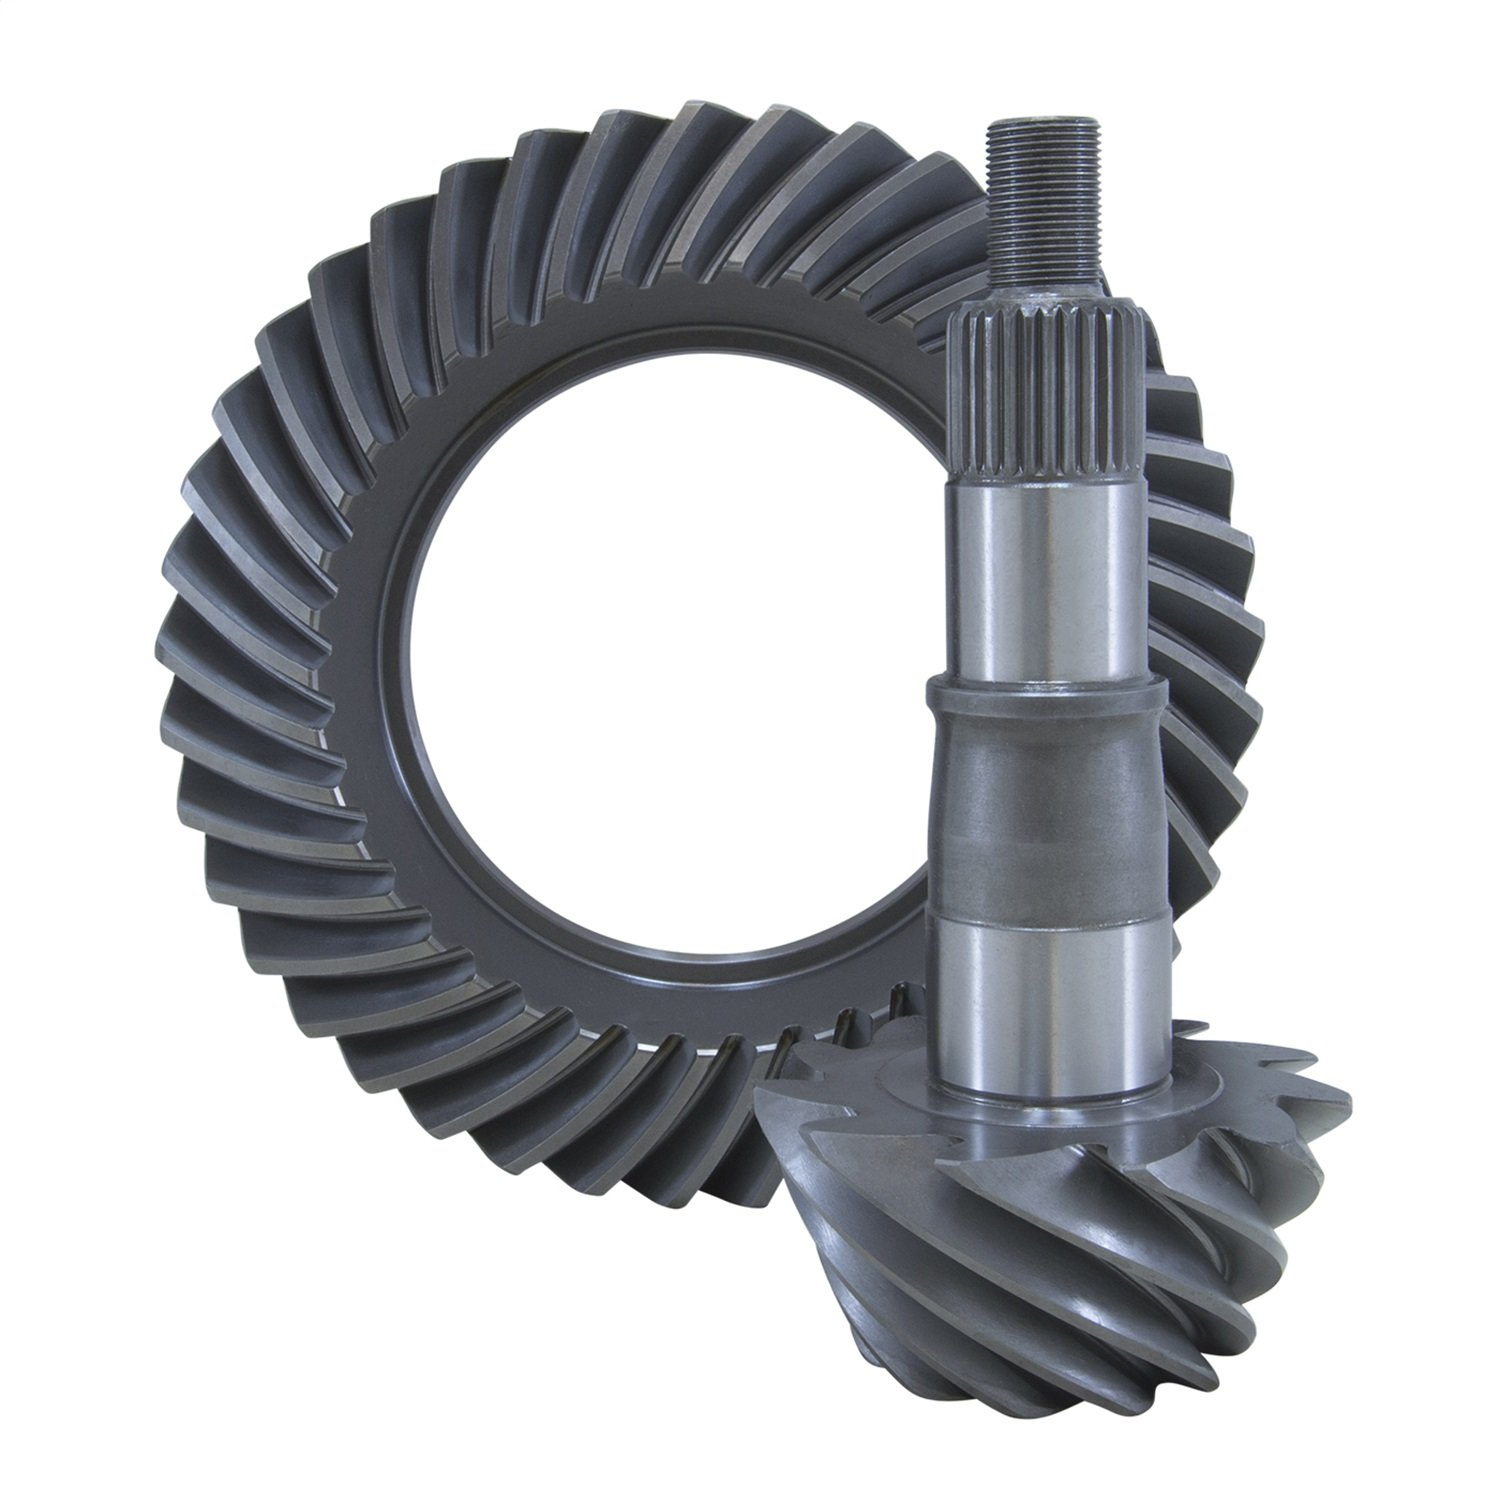 USA Standard Gear ZG GM7.5-342 Ring and Pinion Gear Set for GM 7.5 Differential